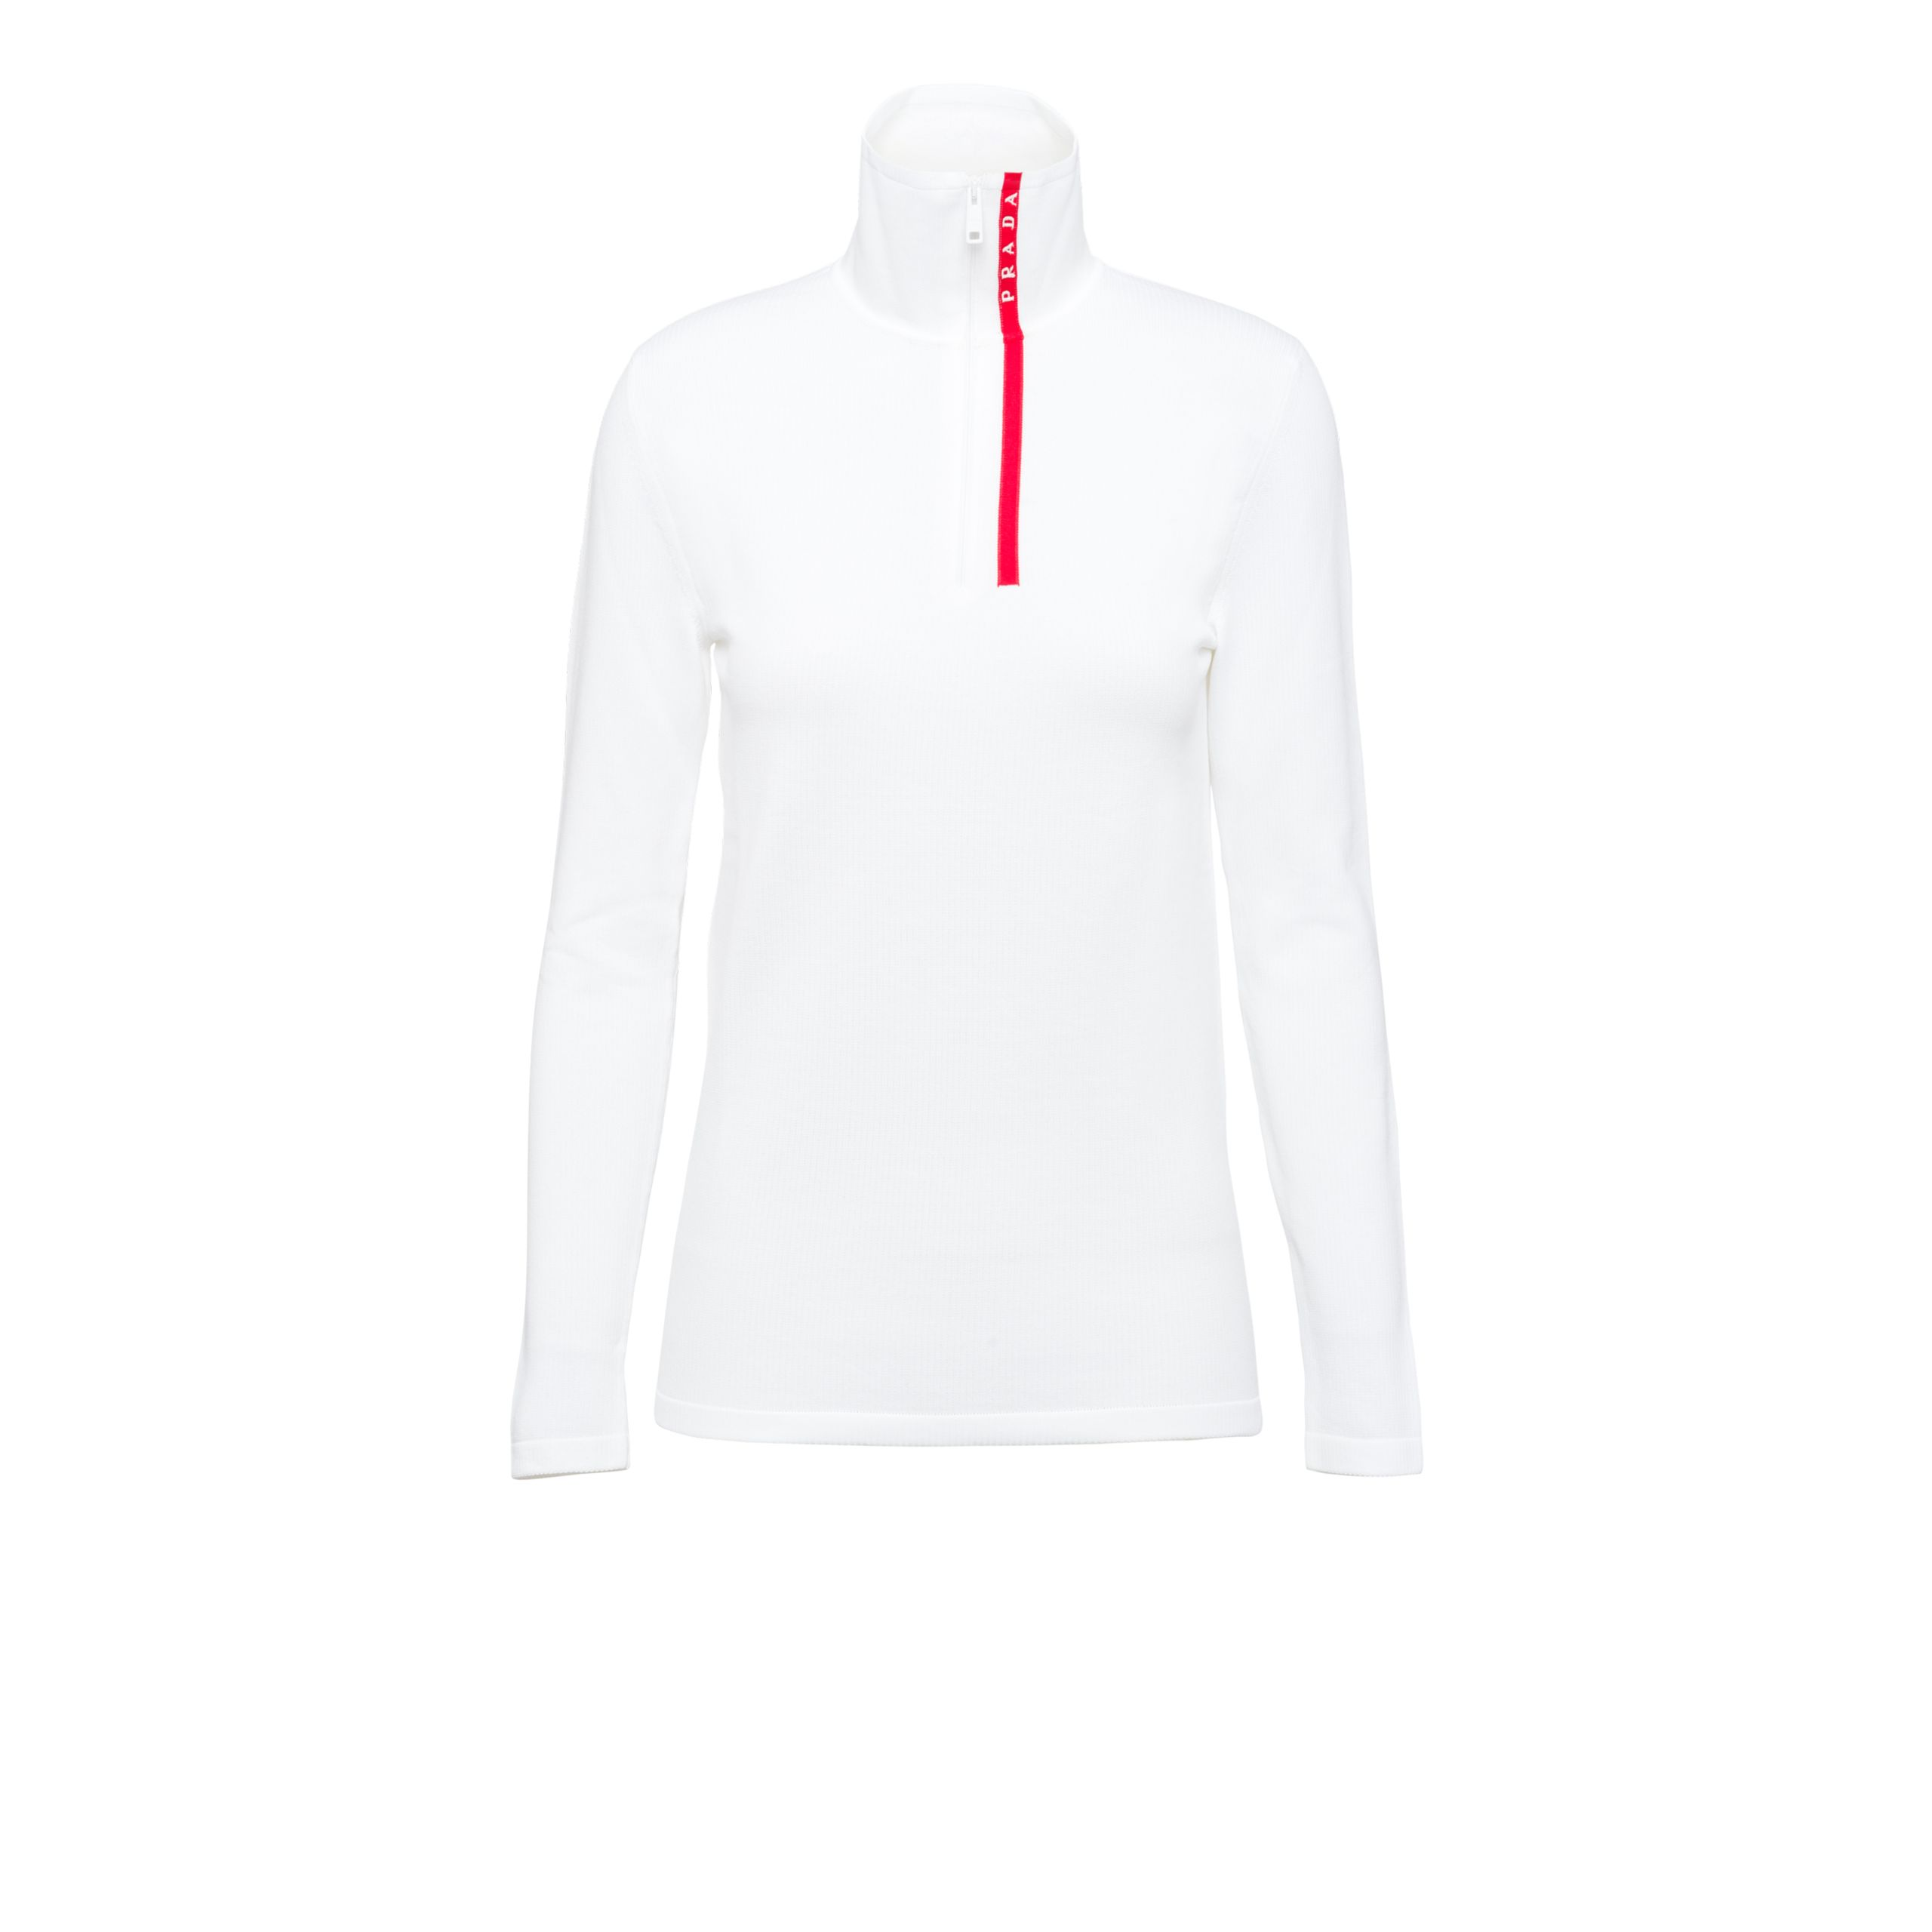 Nylon Turtleneck Sweater by Prada, available on orchardmile.com for $980 Kendall Jenner Top Exact Product